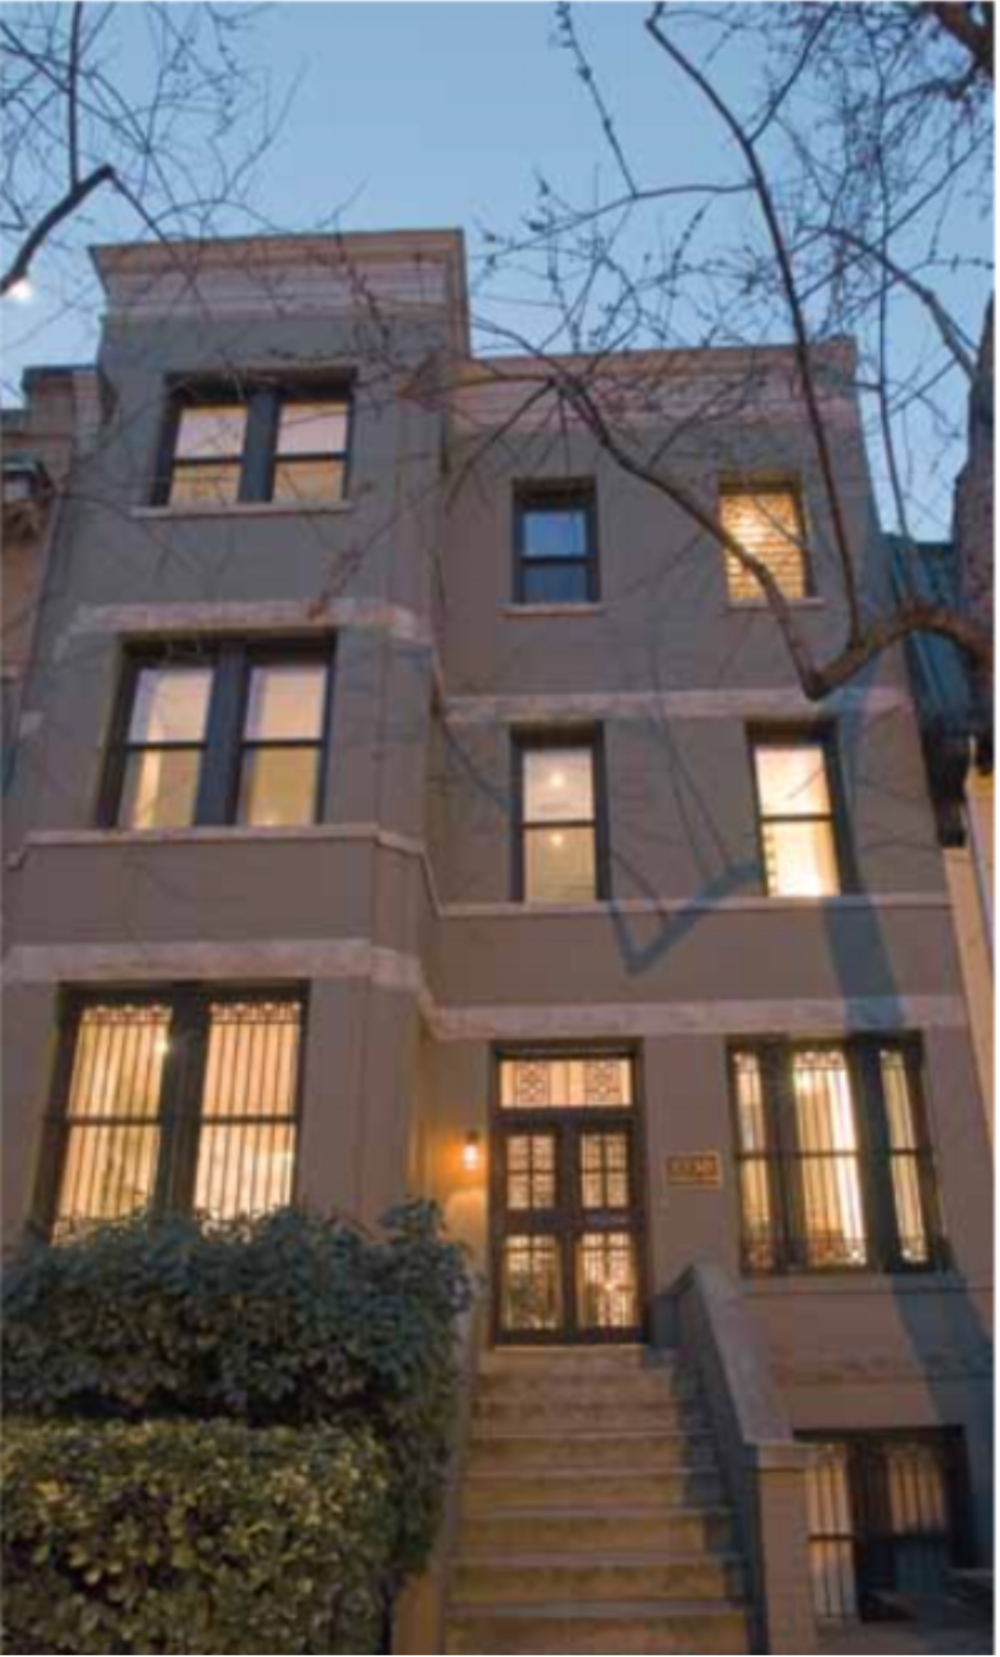 We are located at 1730 21st Street NW, just one block north of the Phillips Collection in the Dupont Circle neighborhood of Washington, D.C.